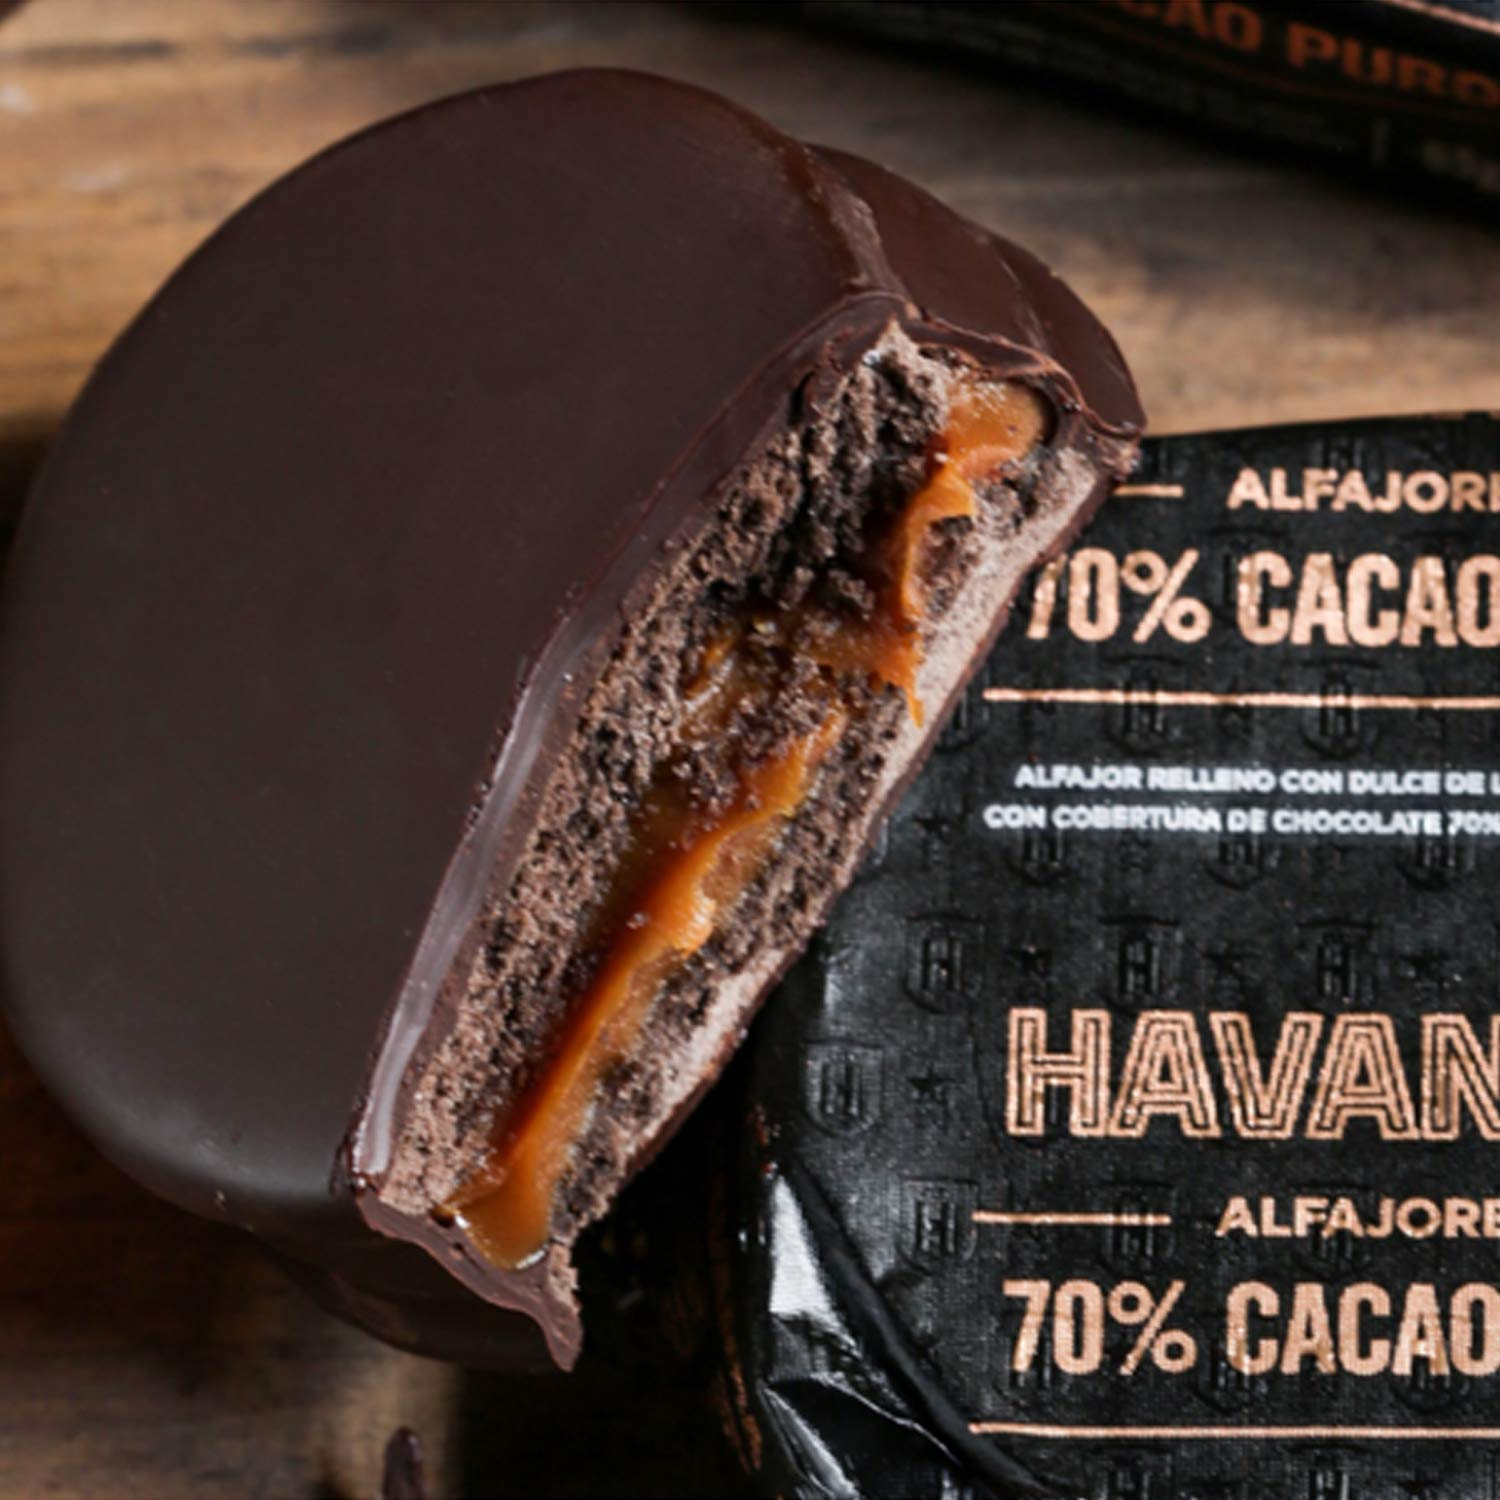 Amazon.com : NEW HAVANNA Extra Dark Chocolate 70% (9 alfajores) - GIFT BOX : Grocery & Gourmet Food